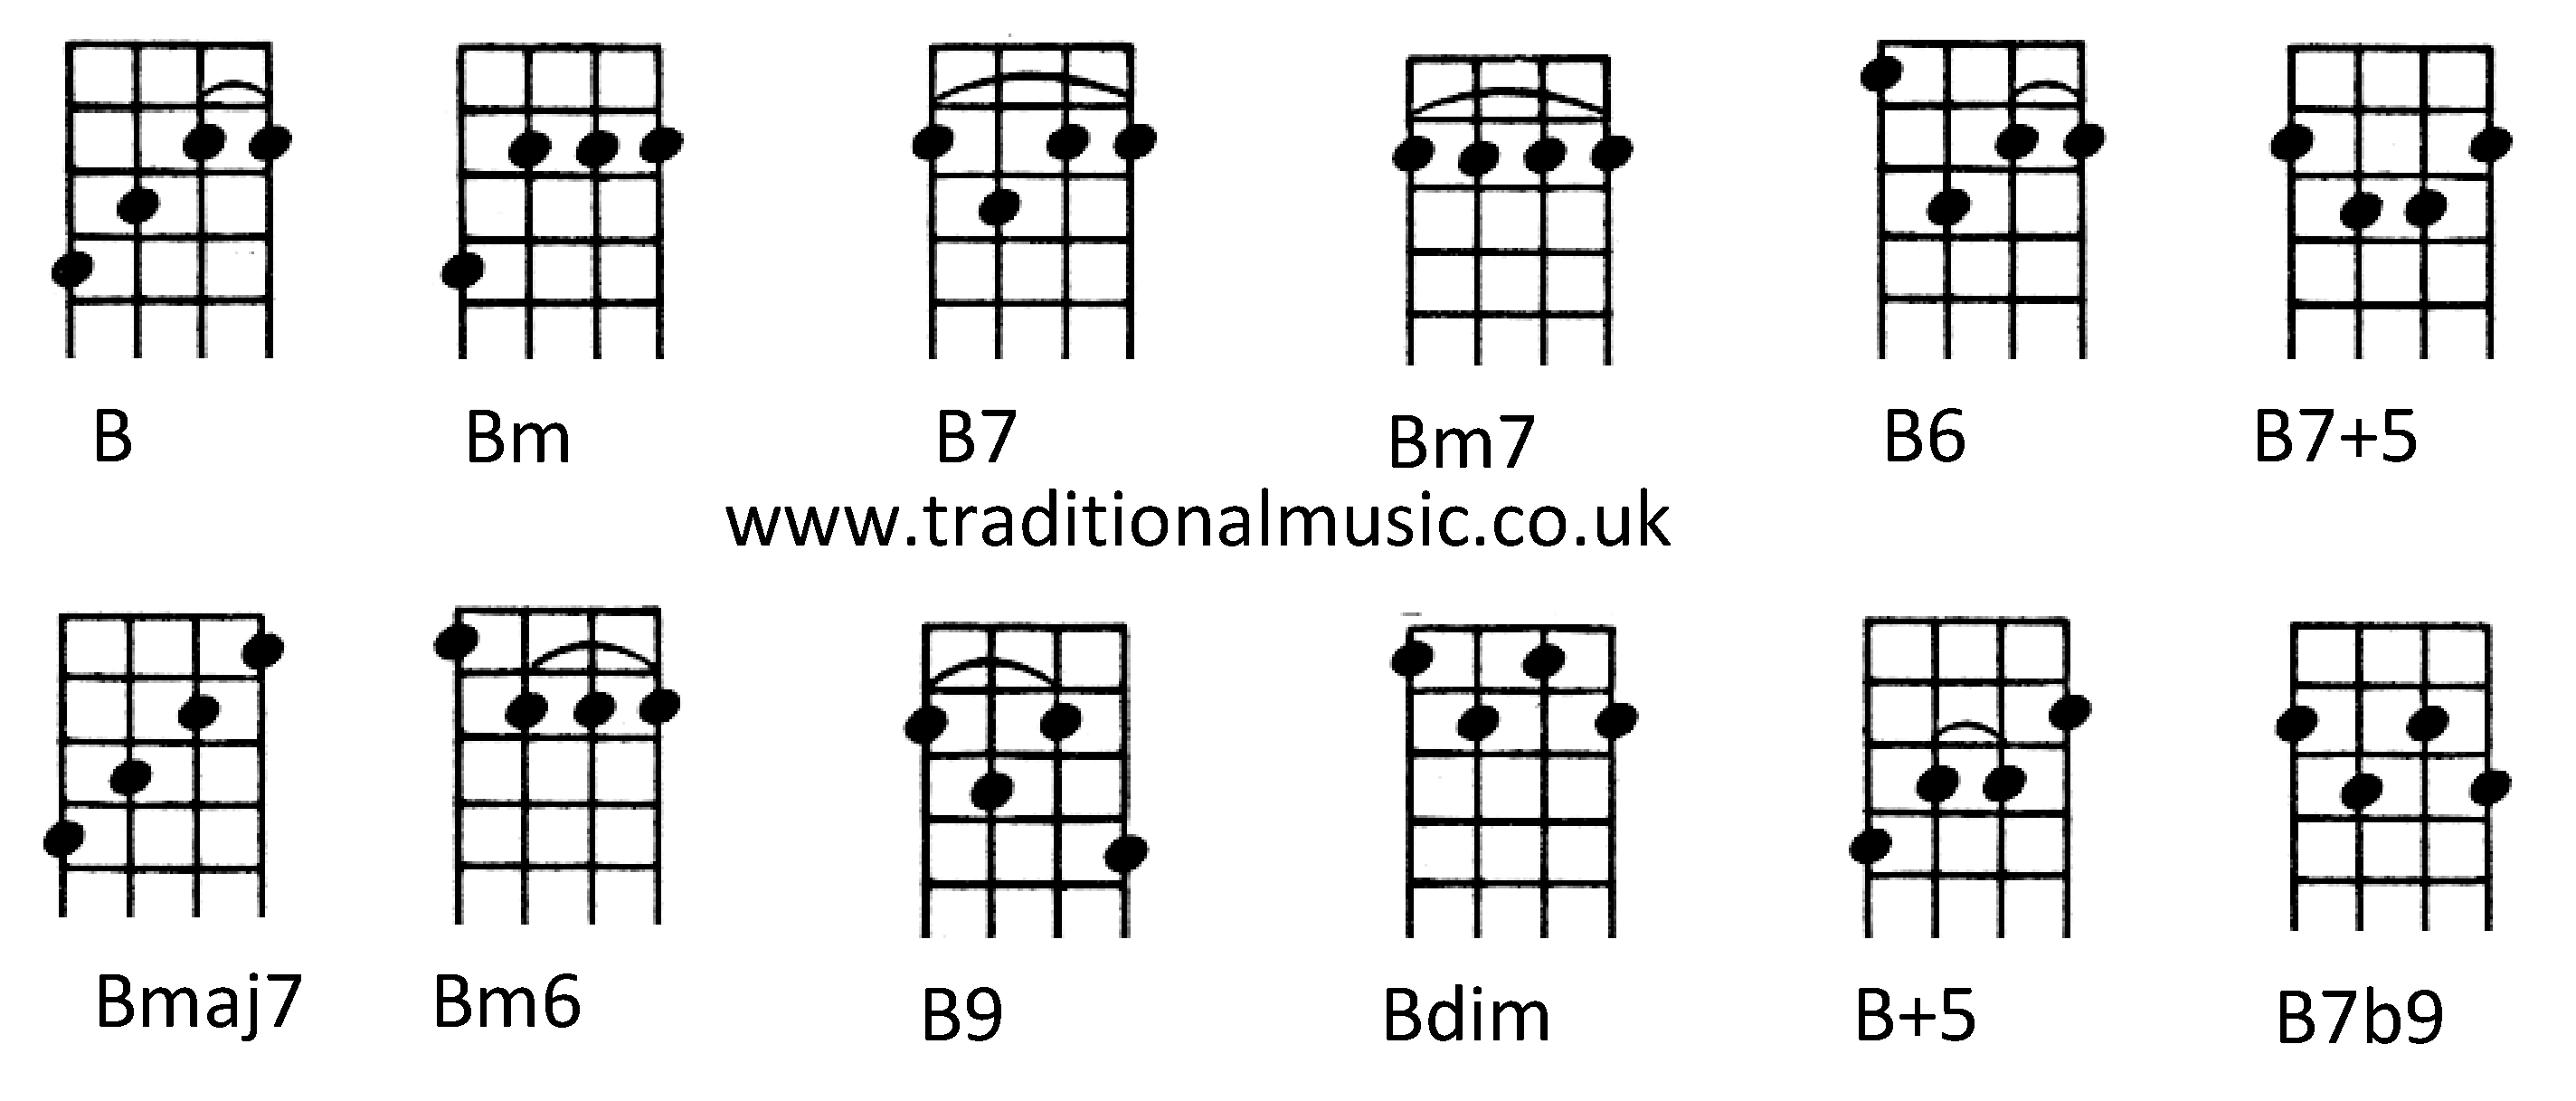 List Of Synonyms And Antonyms The Word B Ukulele Tuning Diagram How To Play Major Chords Pics Diagrams Tab Live